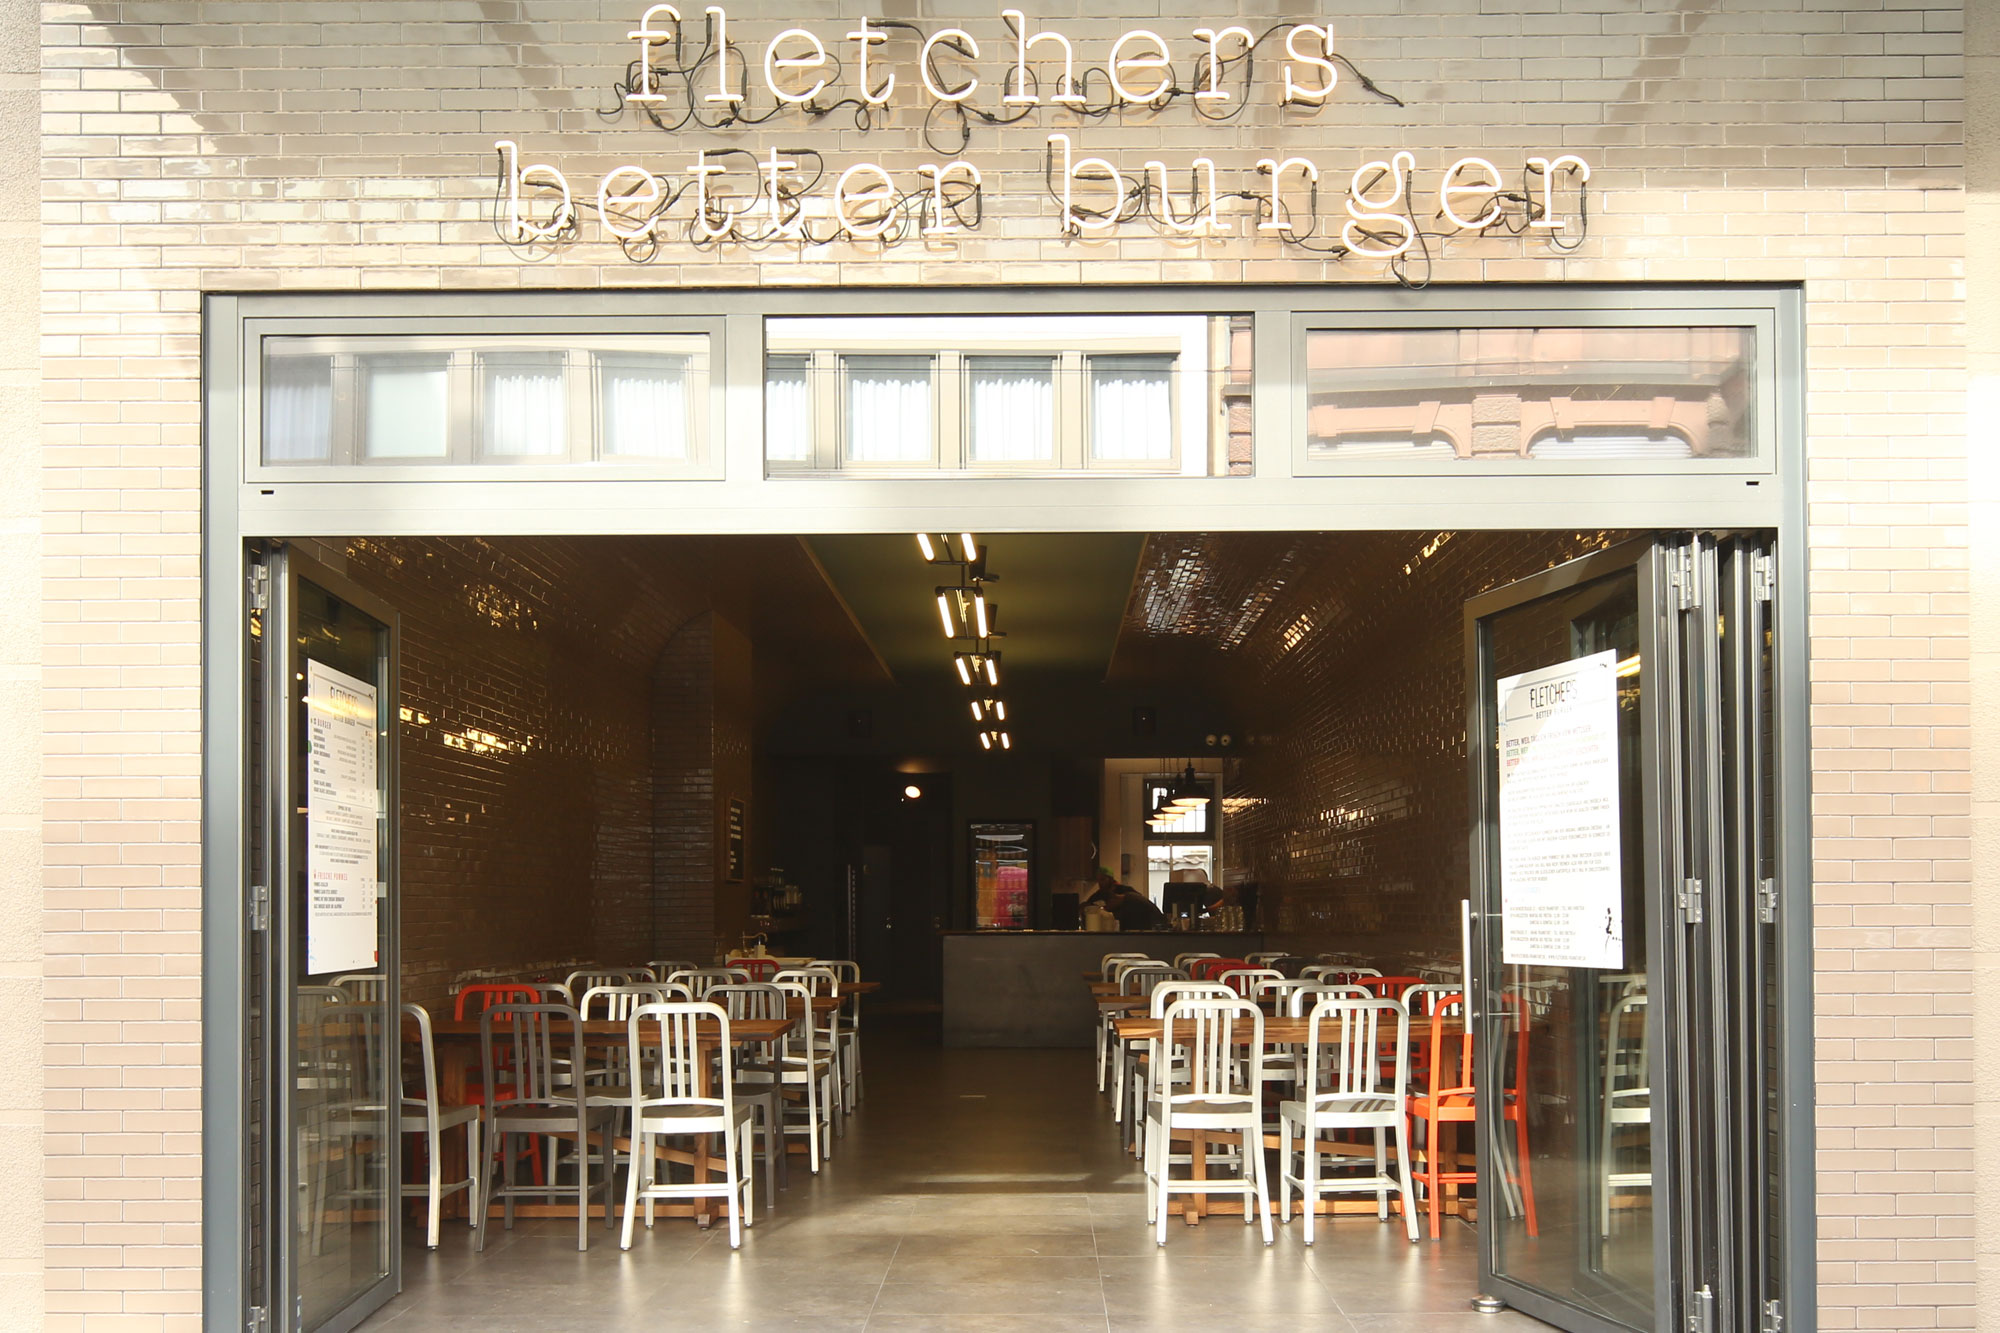 morgen-projects-fletchers-restaurant-bahnhofsviertel-1